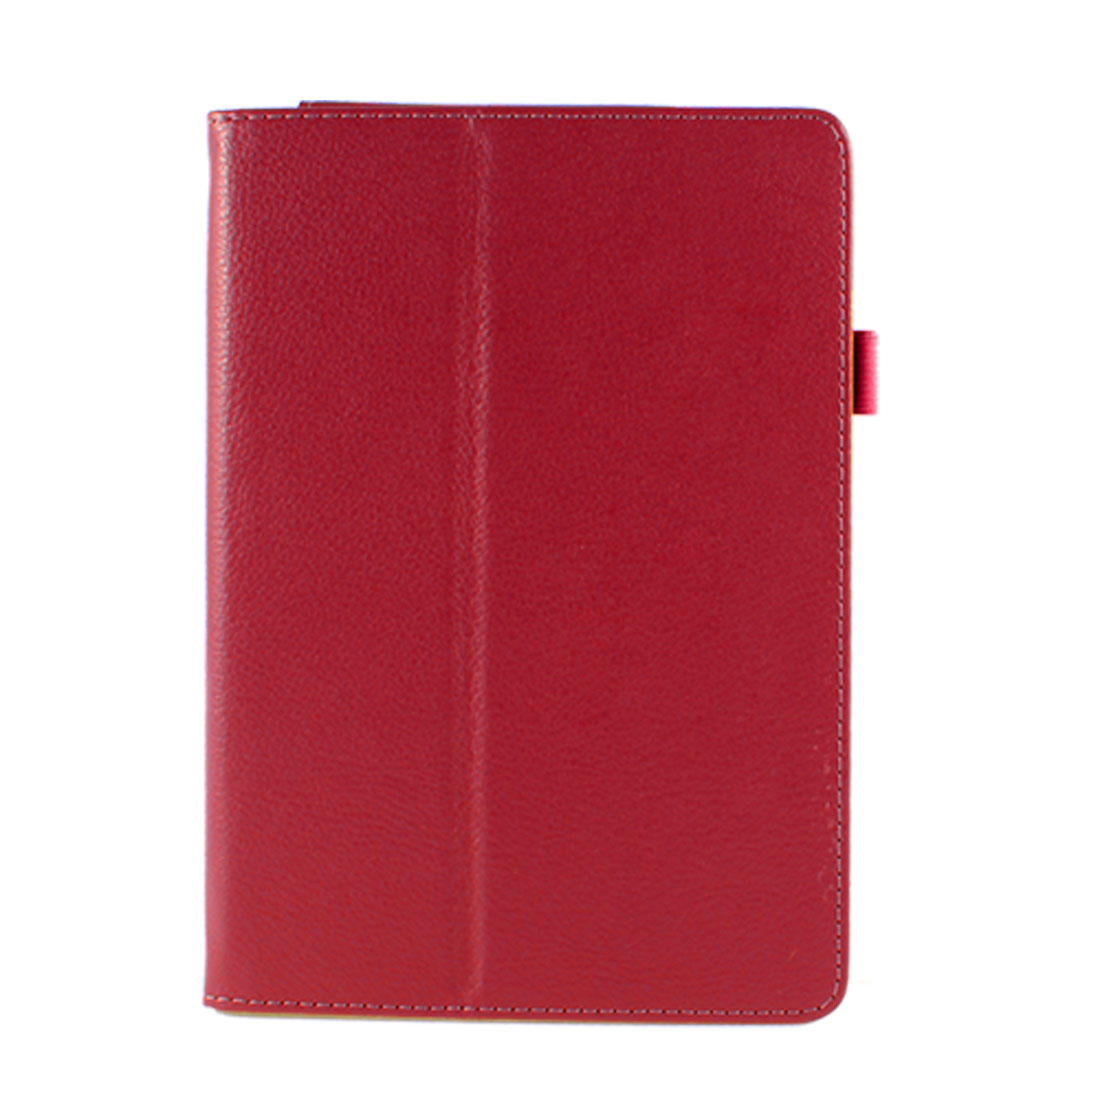 Red Faux Leather Folio Stand Case Cover for Acer Iconia Tab A1-810 7.9""